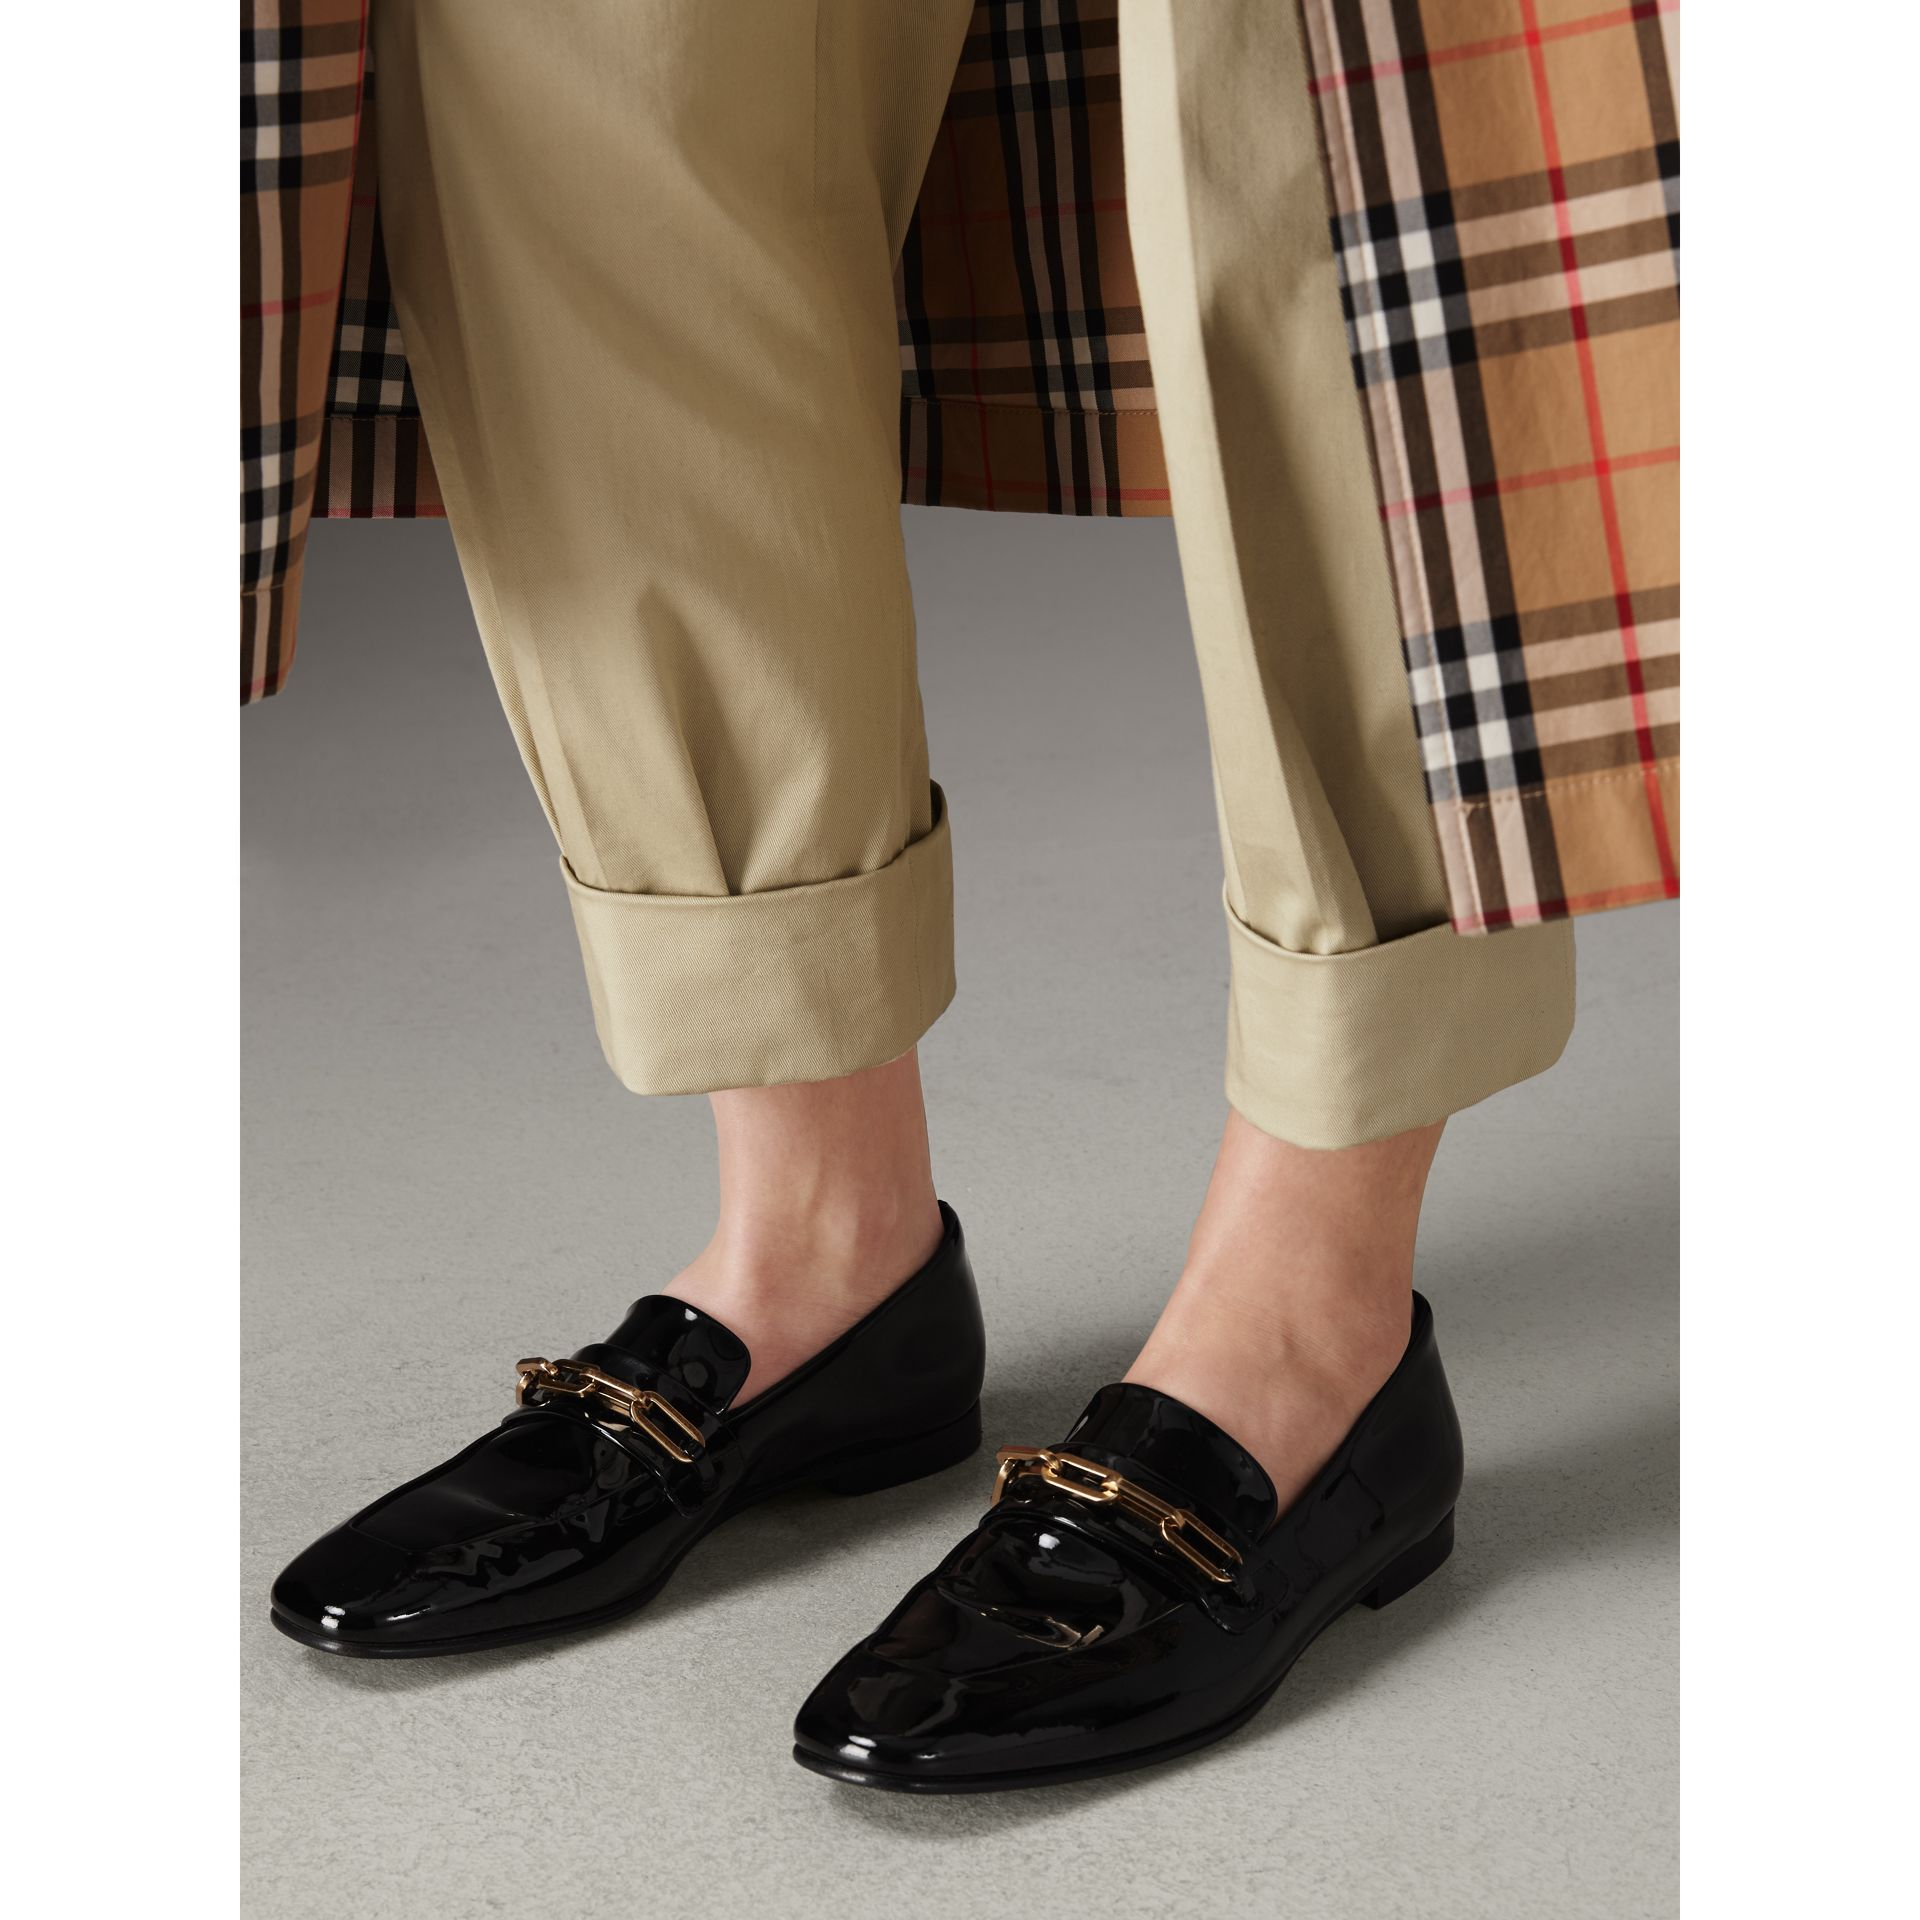 Link Detail Patent Leather Loafers in Black - Women | Burberry - gallery image 2